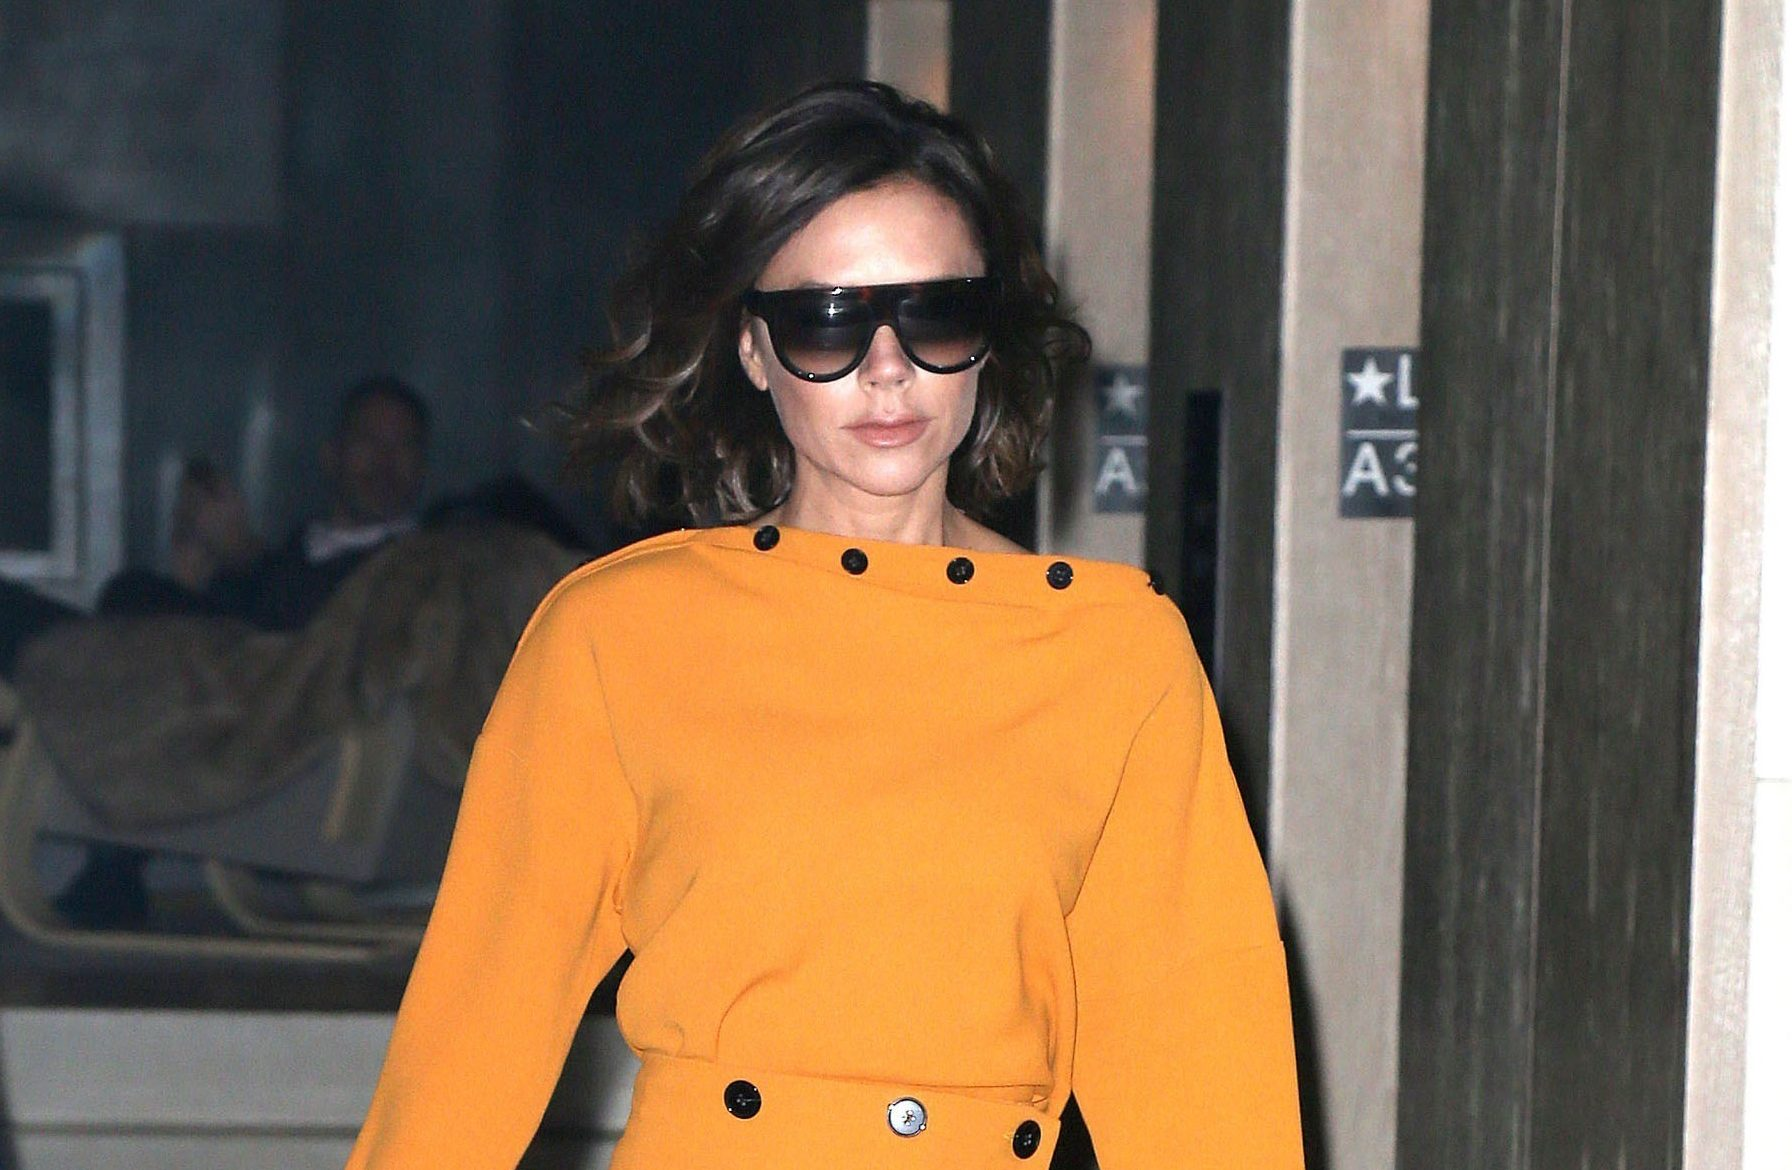 Victoria Beckham speaks out after THAT email scandal